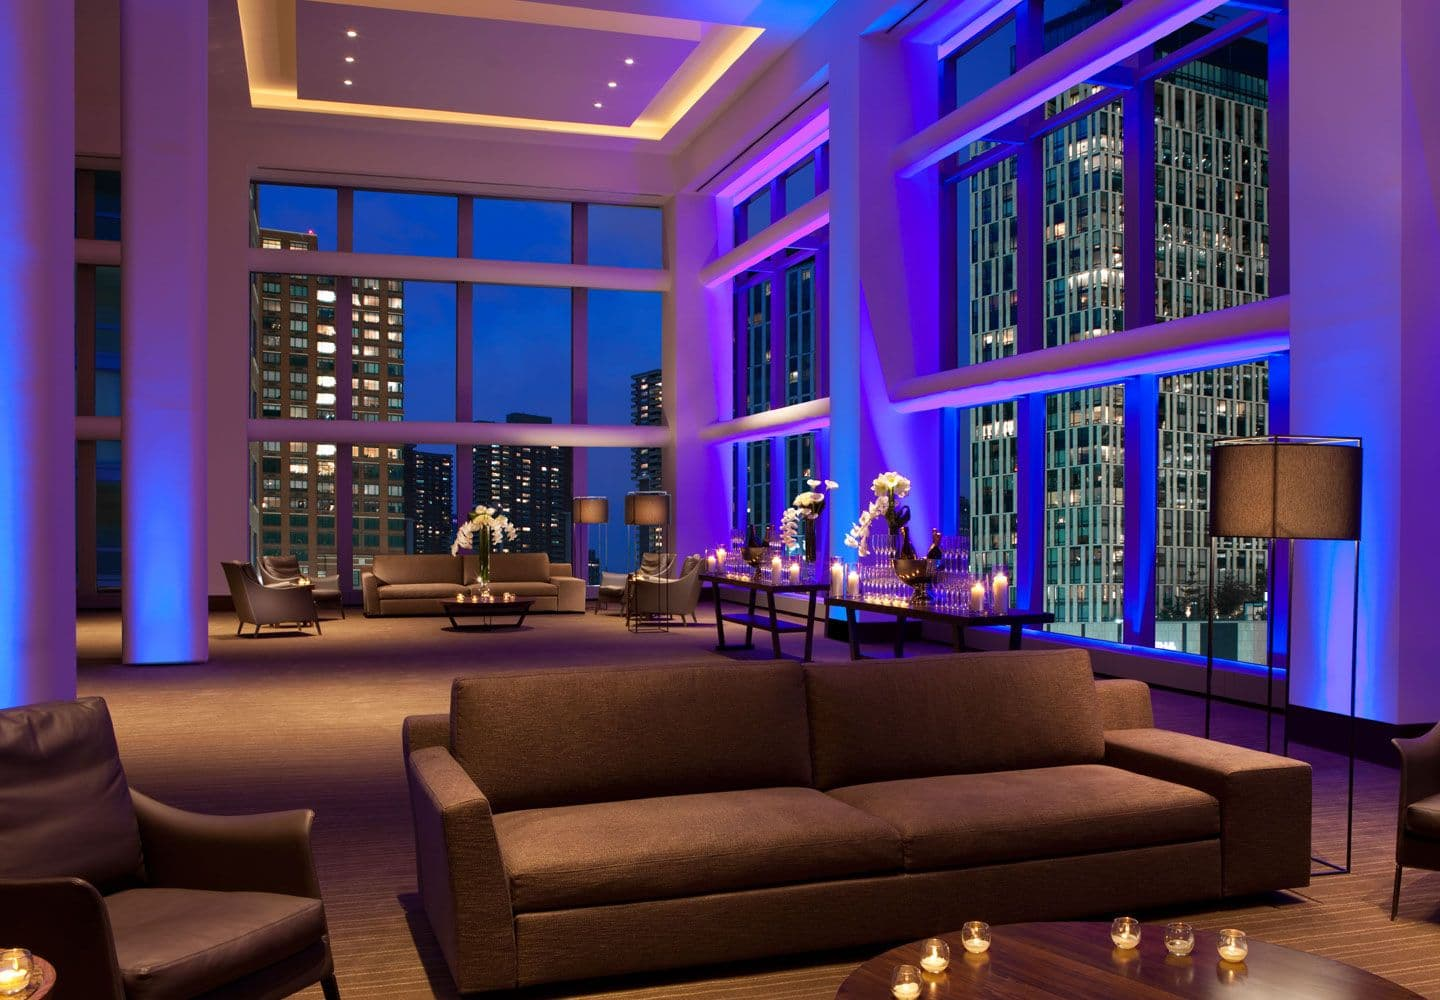 Conrad New York Offers 30 000 Square Feet Of Centrally Located Event E And Up To 18 Meeting Room Combinations Accommodating Events 600 Attendees